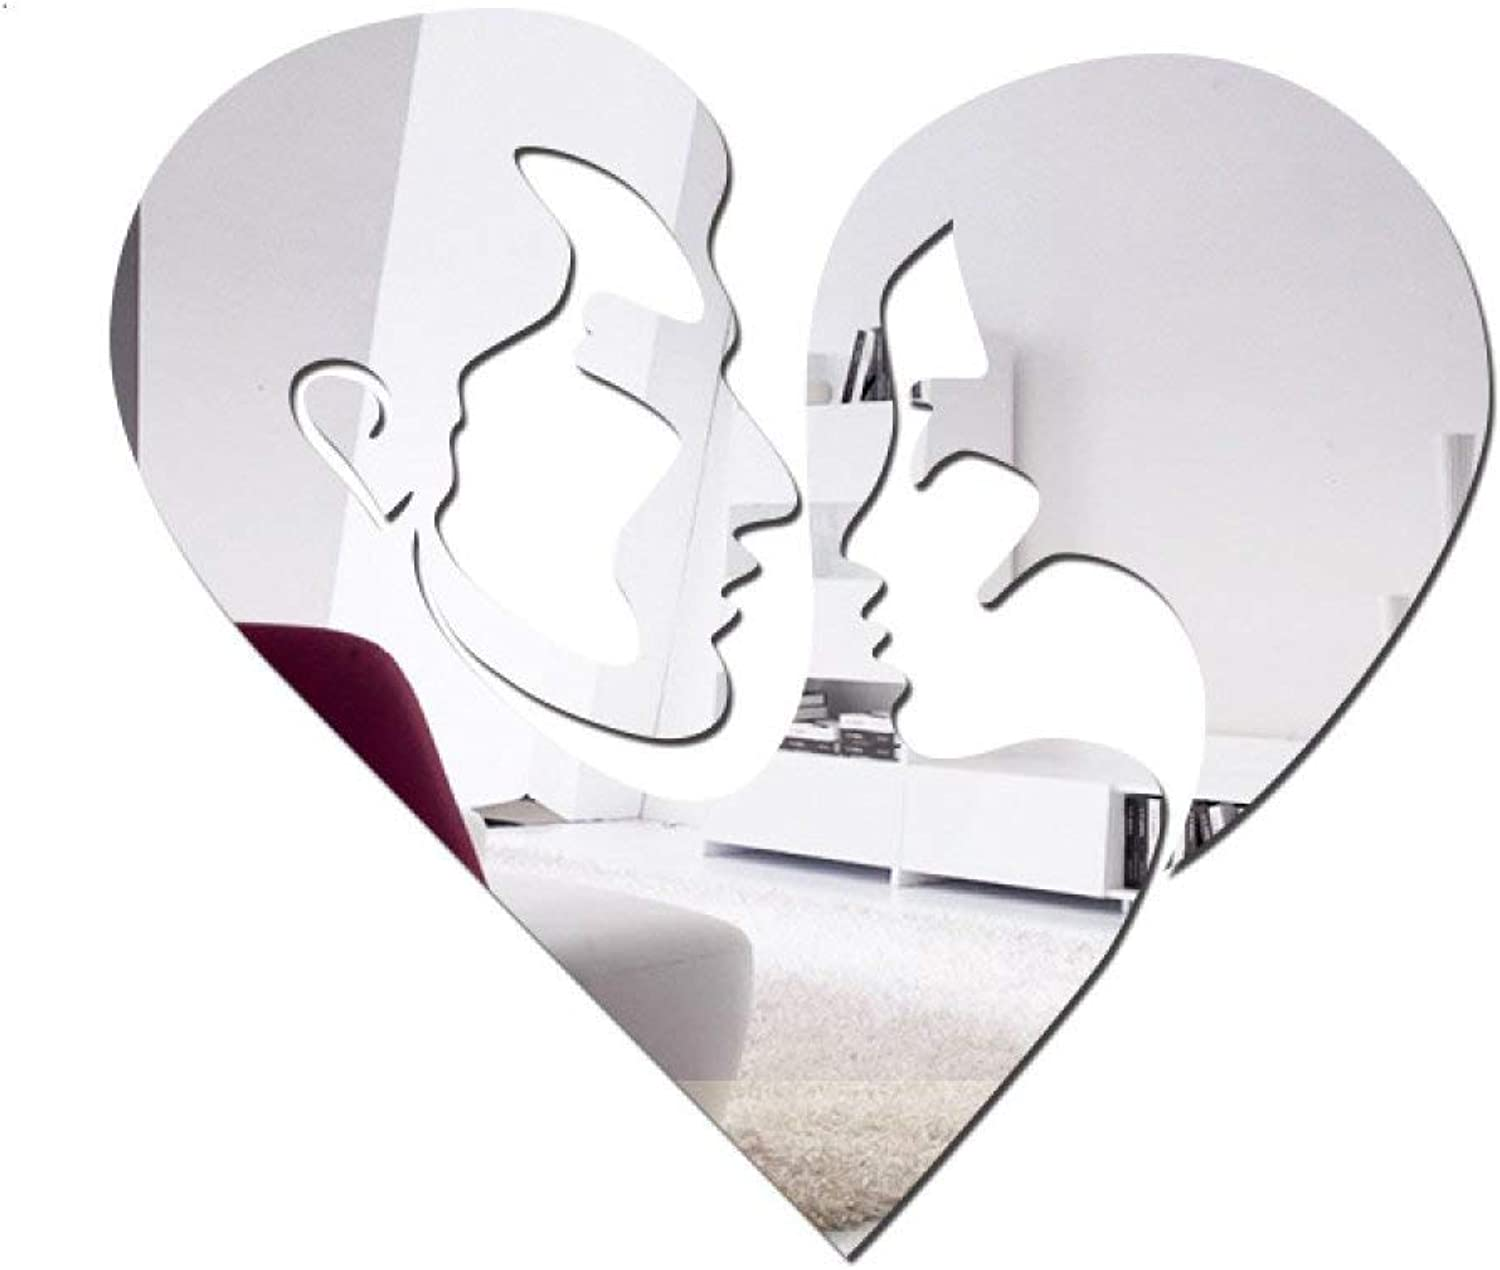 Lvdijidian PS Plastic Wall Stickers Heart-Shaped Mirror Paste 3D Stereo Acrylic Removable Creative Decorative Decor Sticker for Nursery Room (color   Silver)